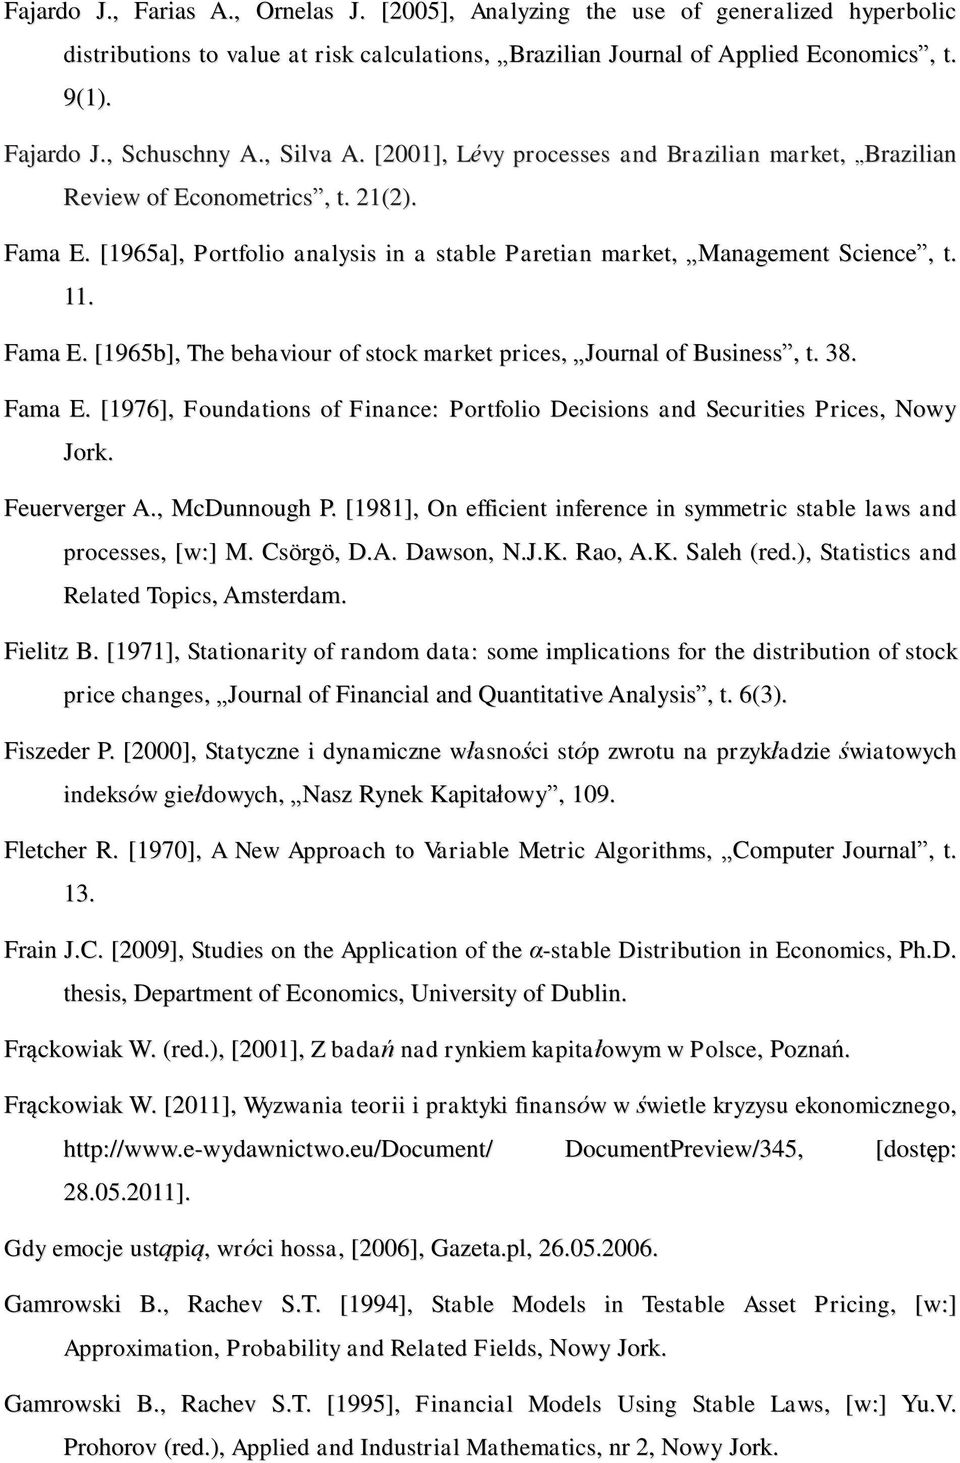 [1965a], Portfolio analysis in a stable Paretian market, Management Science, t. 11. Fama E. [1965b], The behaviour of stock market prices, Journal of Business, t. 38. Fama E. [1976], Foundations of Finance: Portfolio Decisions and Securities Prices, Nowy Jork.